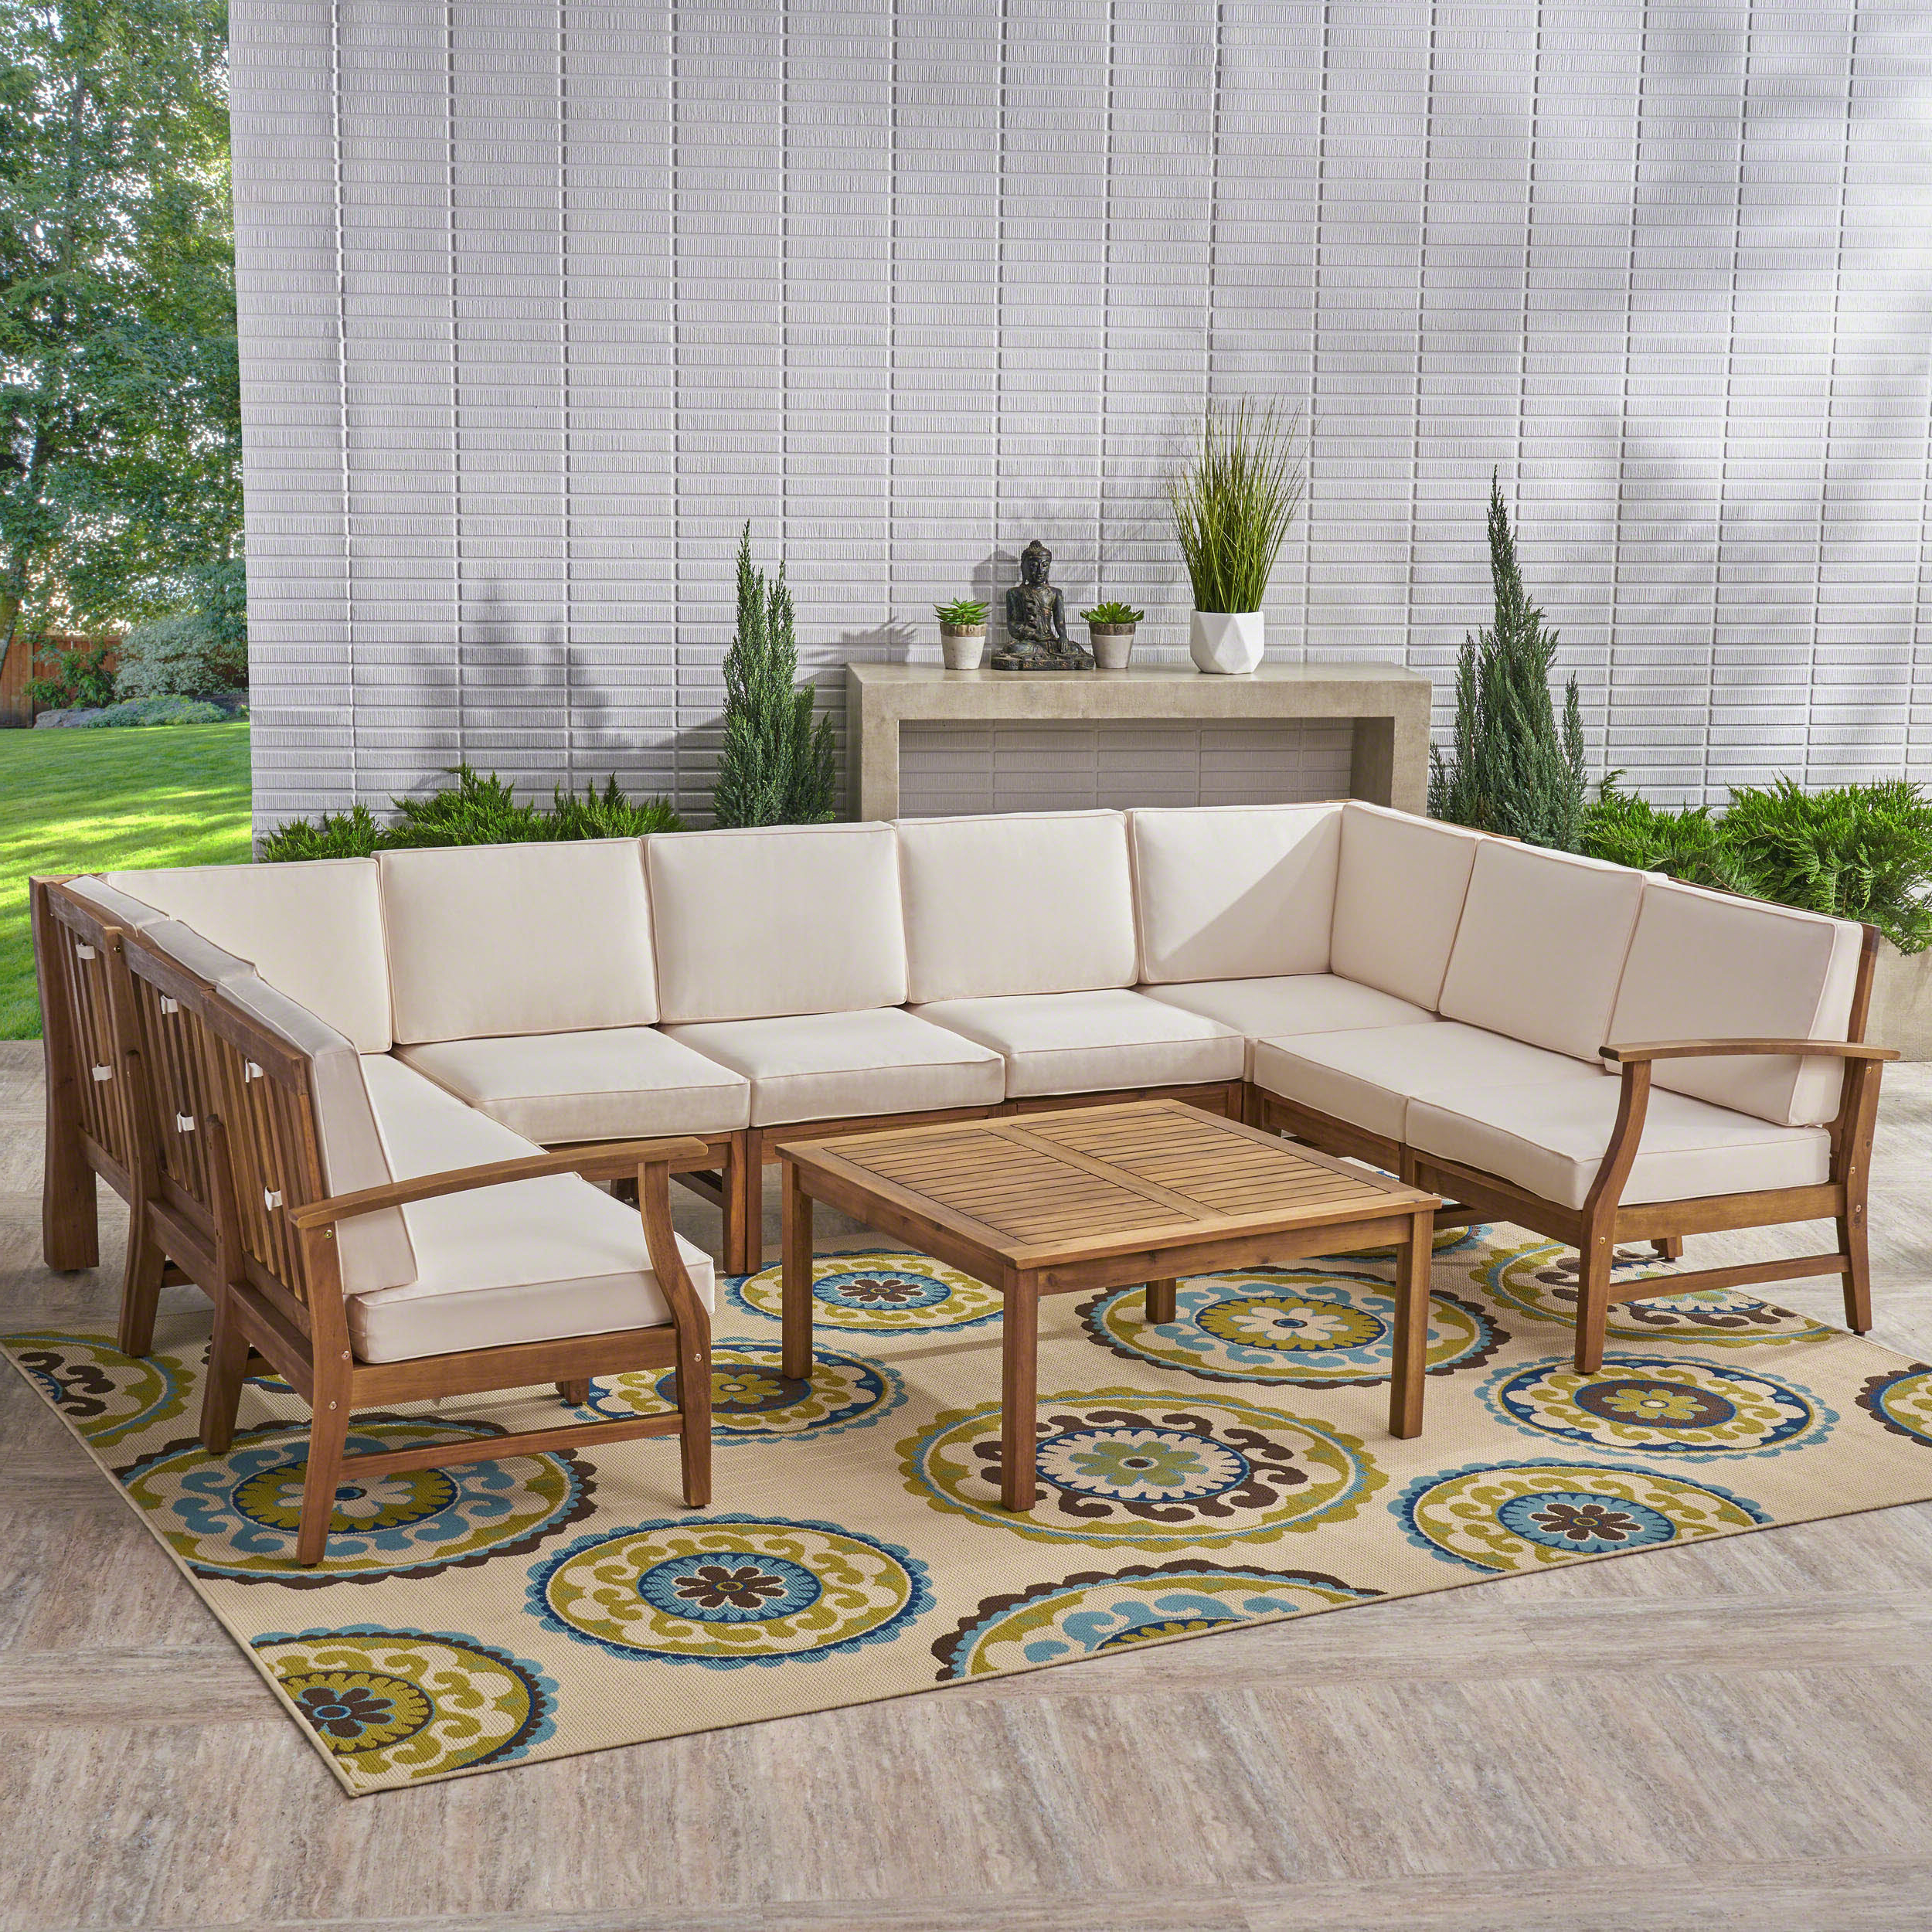 Antonia 10 Piece Sectional Set With Cushions Inside Most Up To Date Antonia Teak Patio Sectionals With Cushions (View 1 of 25)